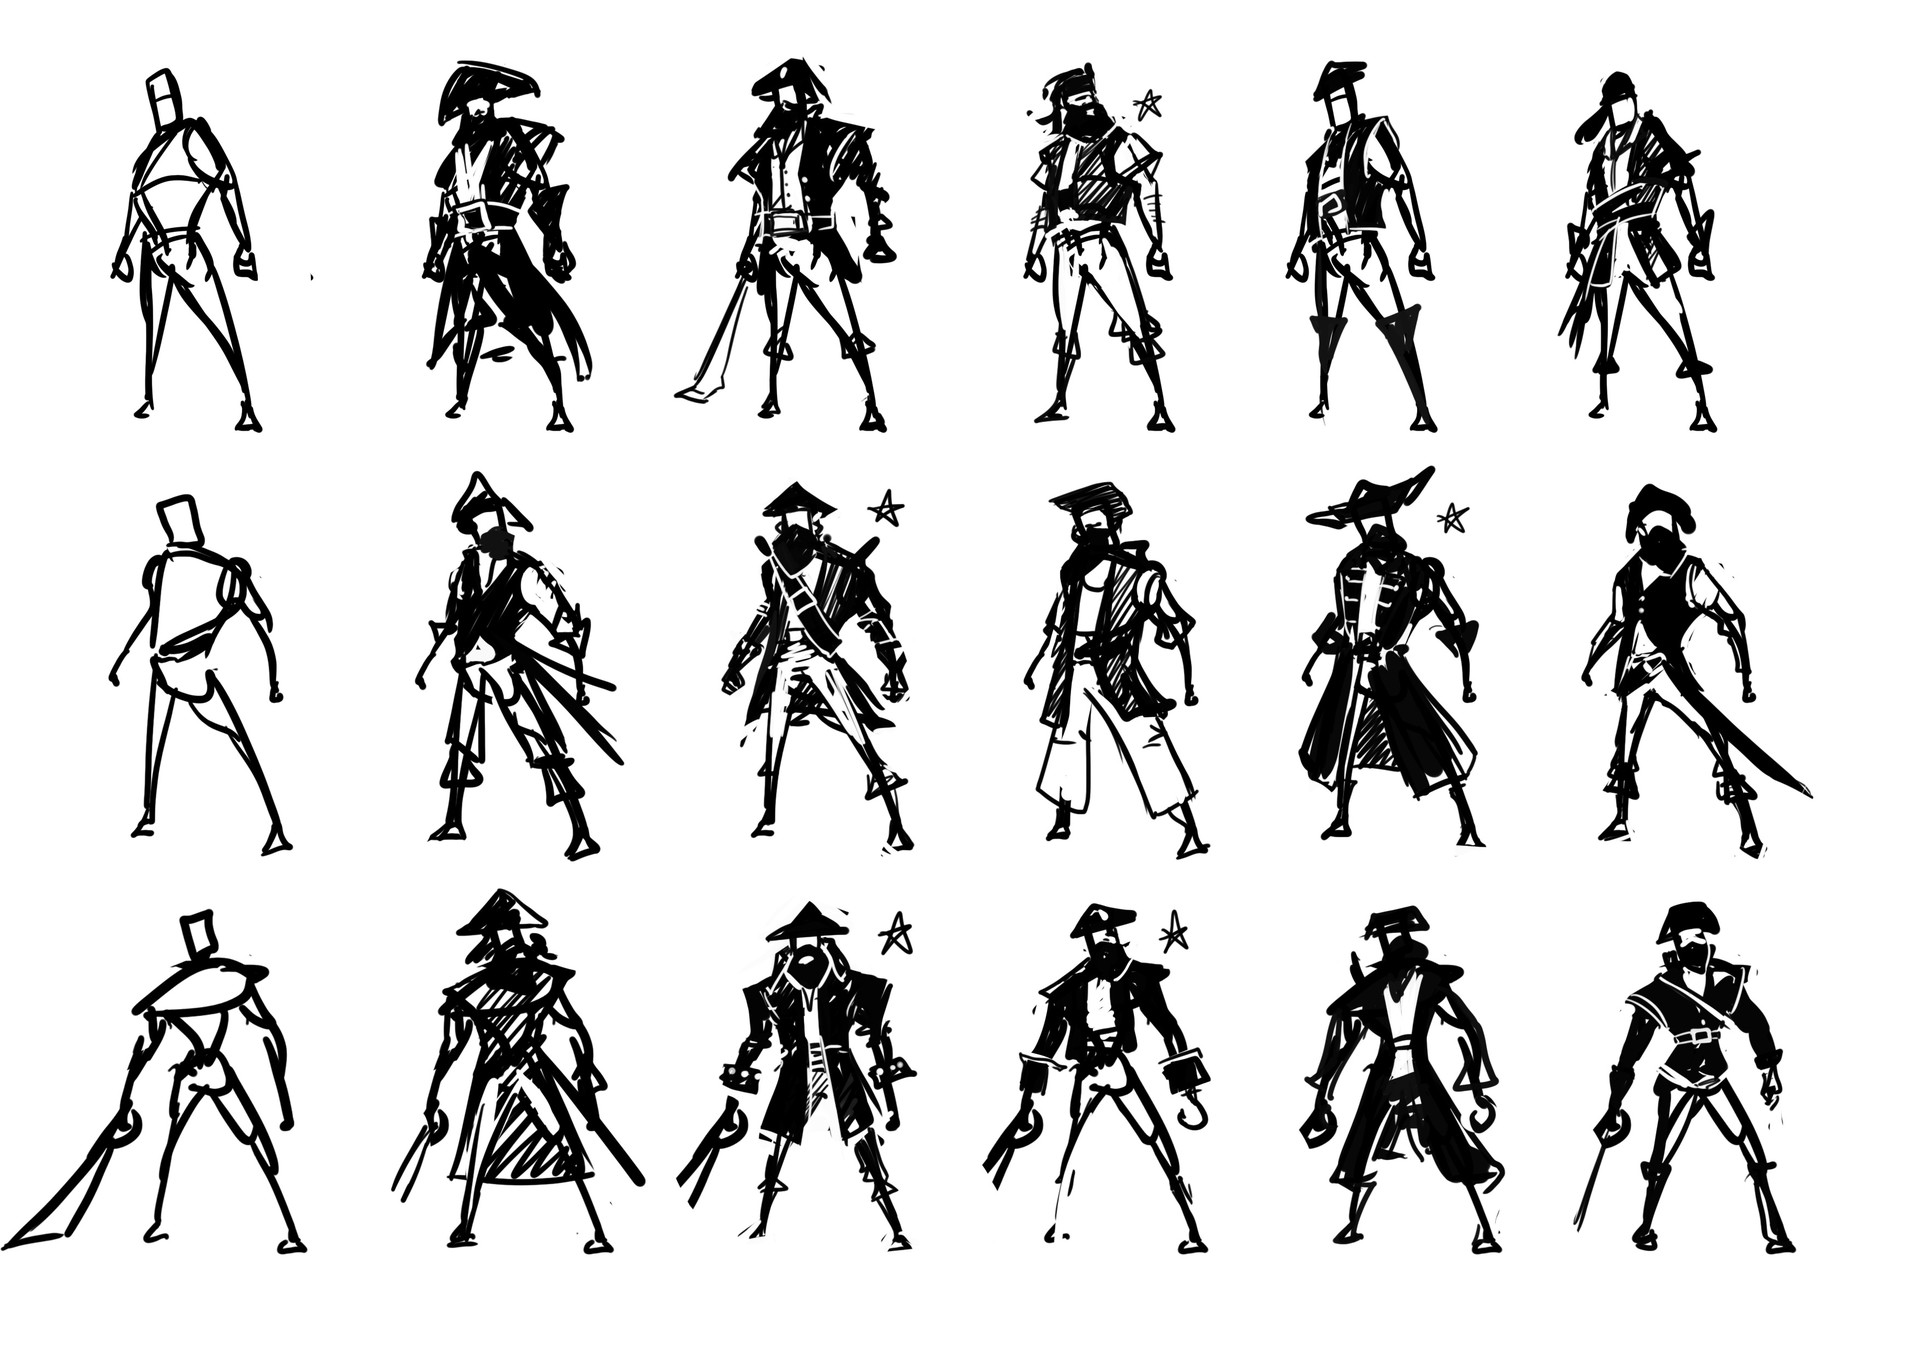 Jake bullock pirate2 silhouettedev